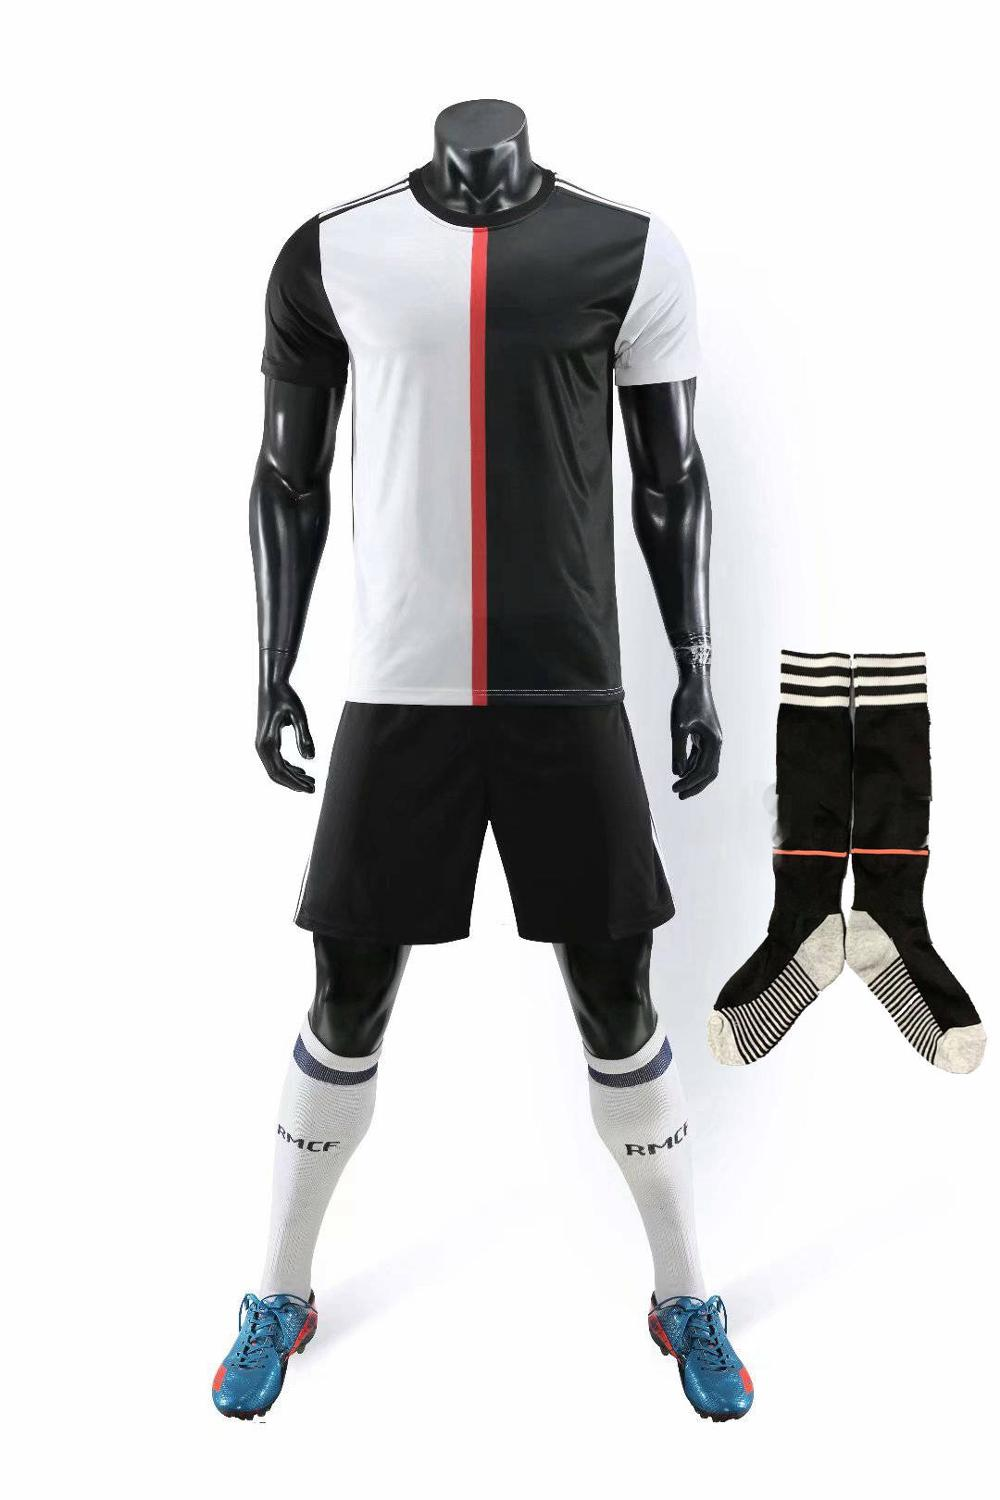 Children Sets football uniforms boys and girls sports kids youth training suits blank custom print soccer set with socks 33